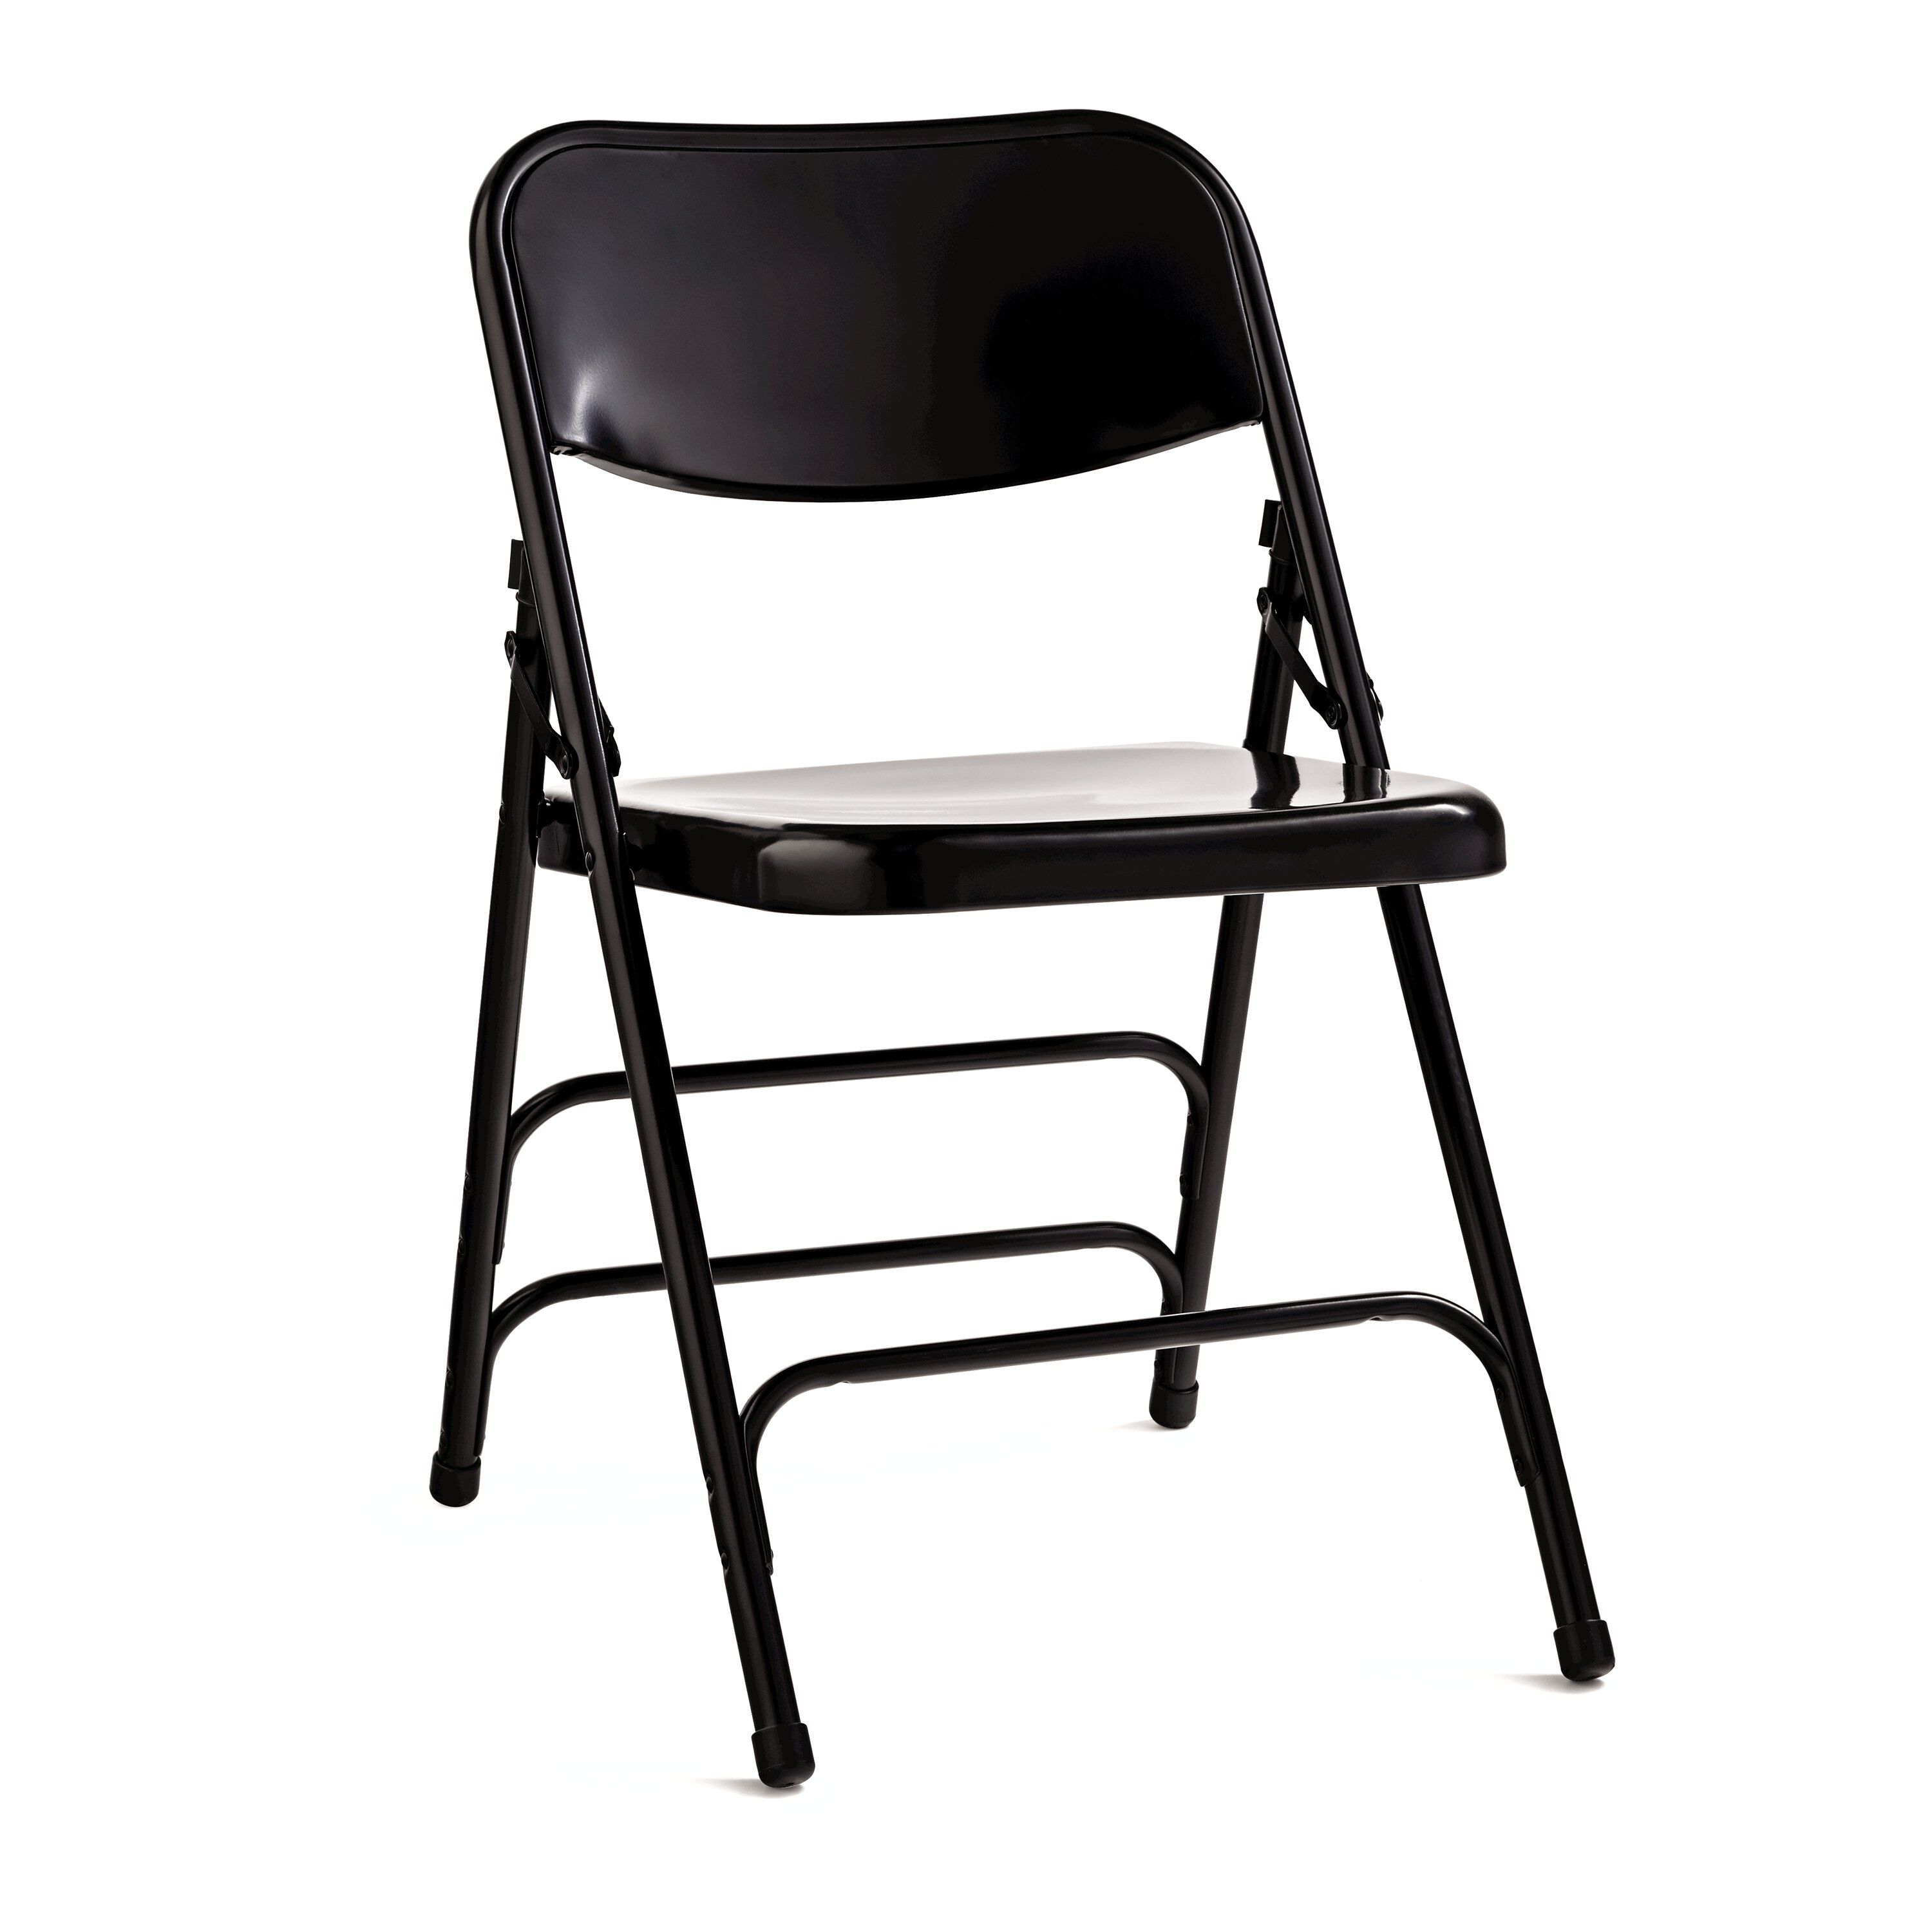 Samsonite Steel Folding Chair (Case/4)